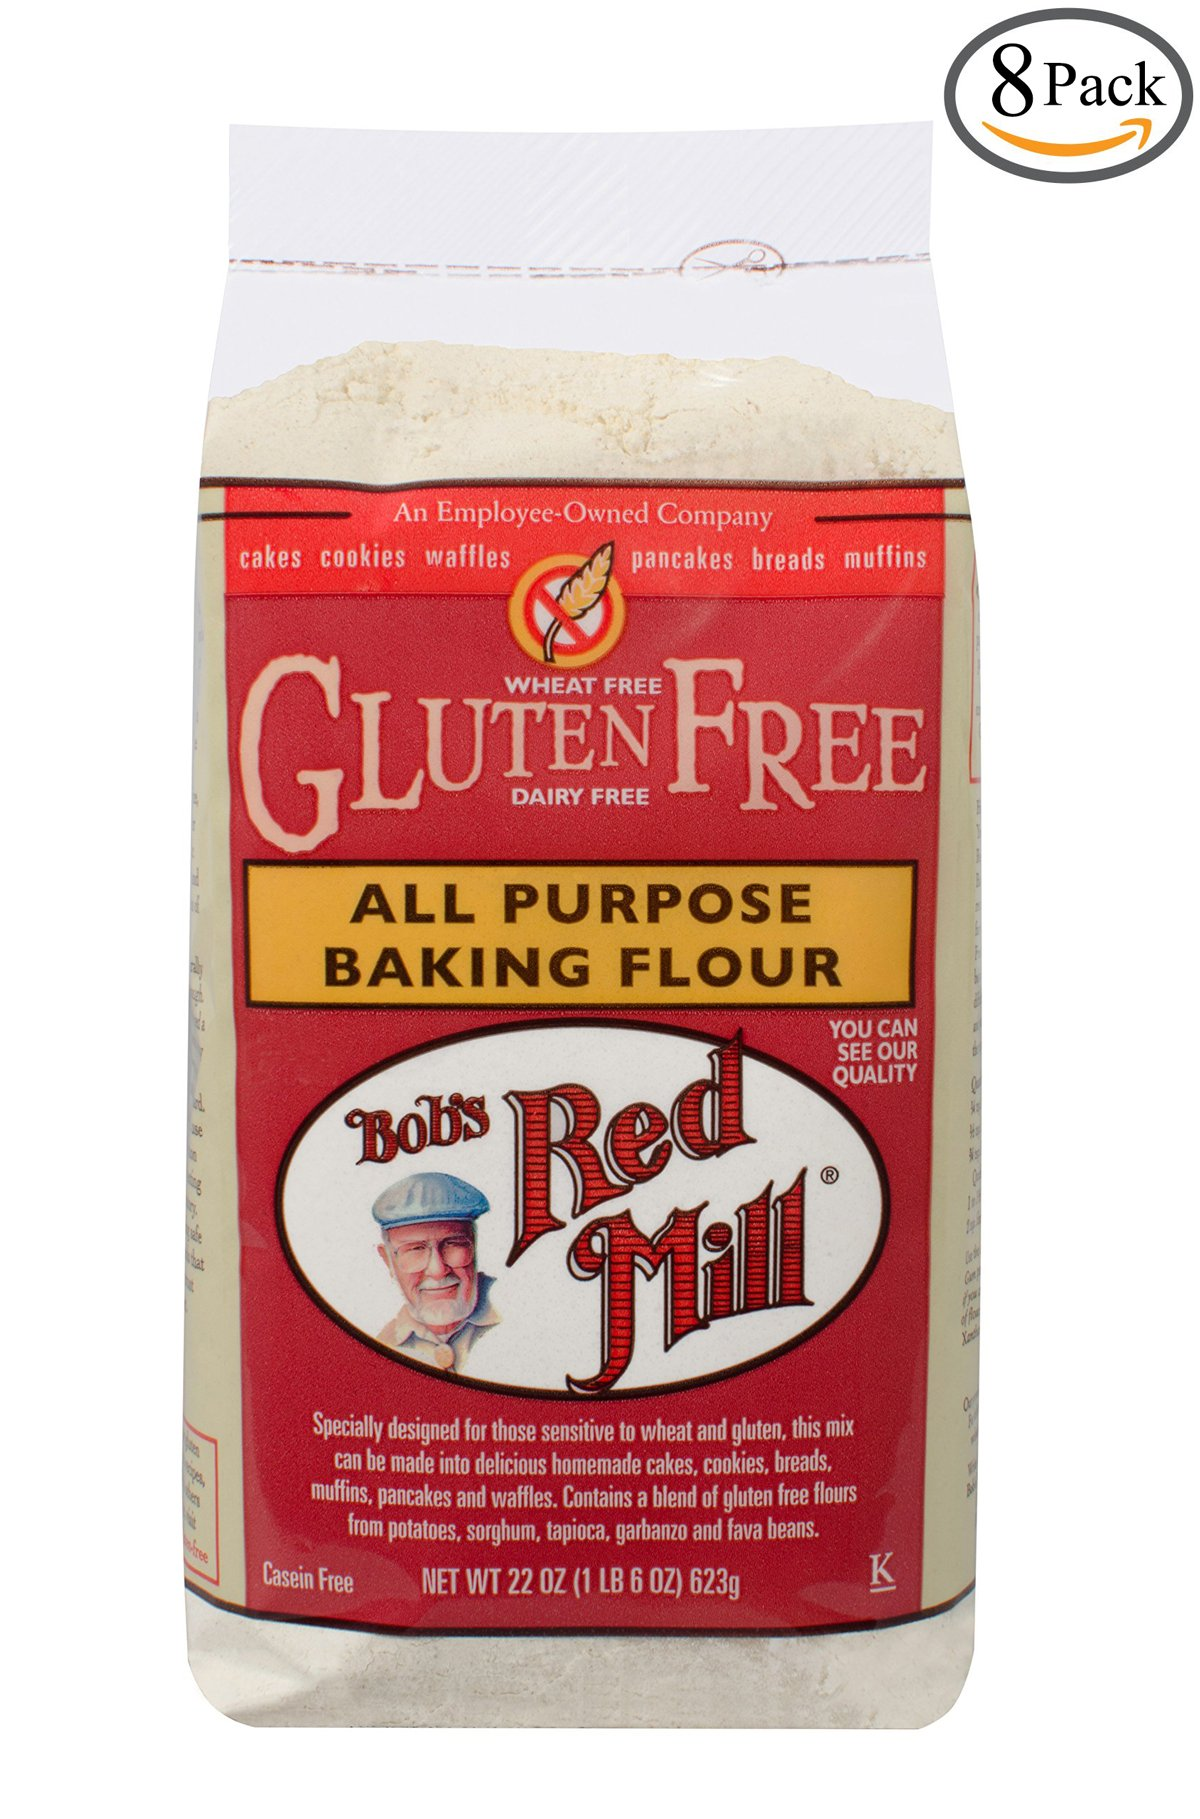 Bobs Red Mill Gluten Free All-Purpose Baking Flour, 22-ounce (Pack of 8)